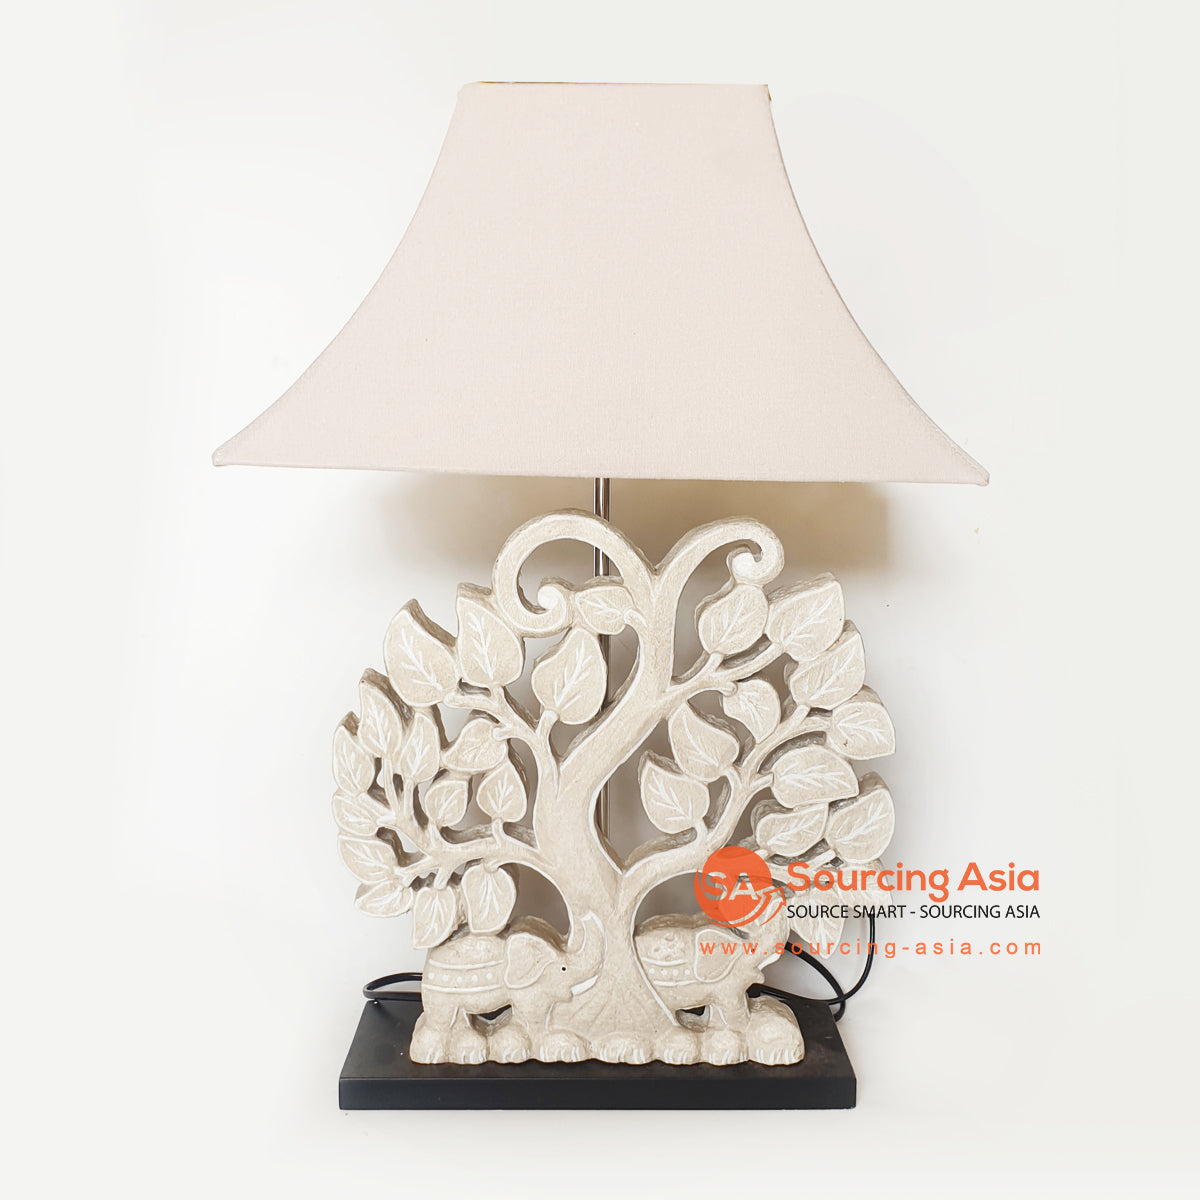 MANC093 TREE CARVING TABLE LAMP WITH WHITE LAMP SHADE